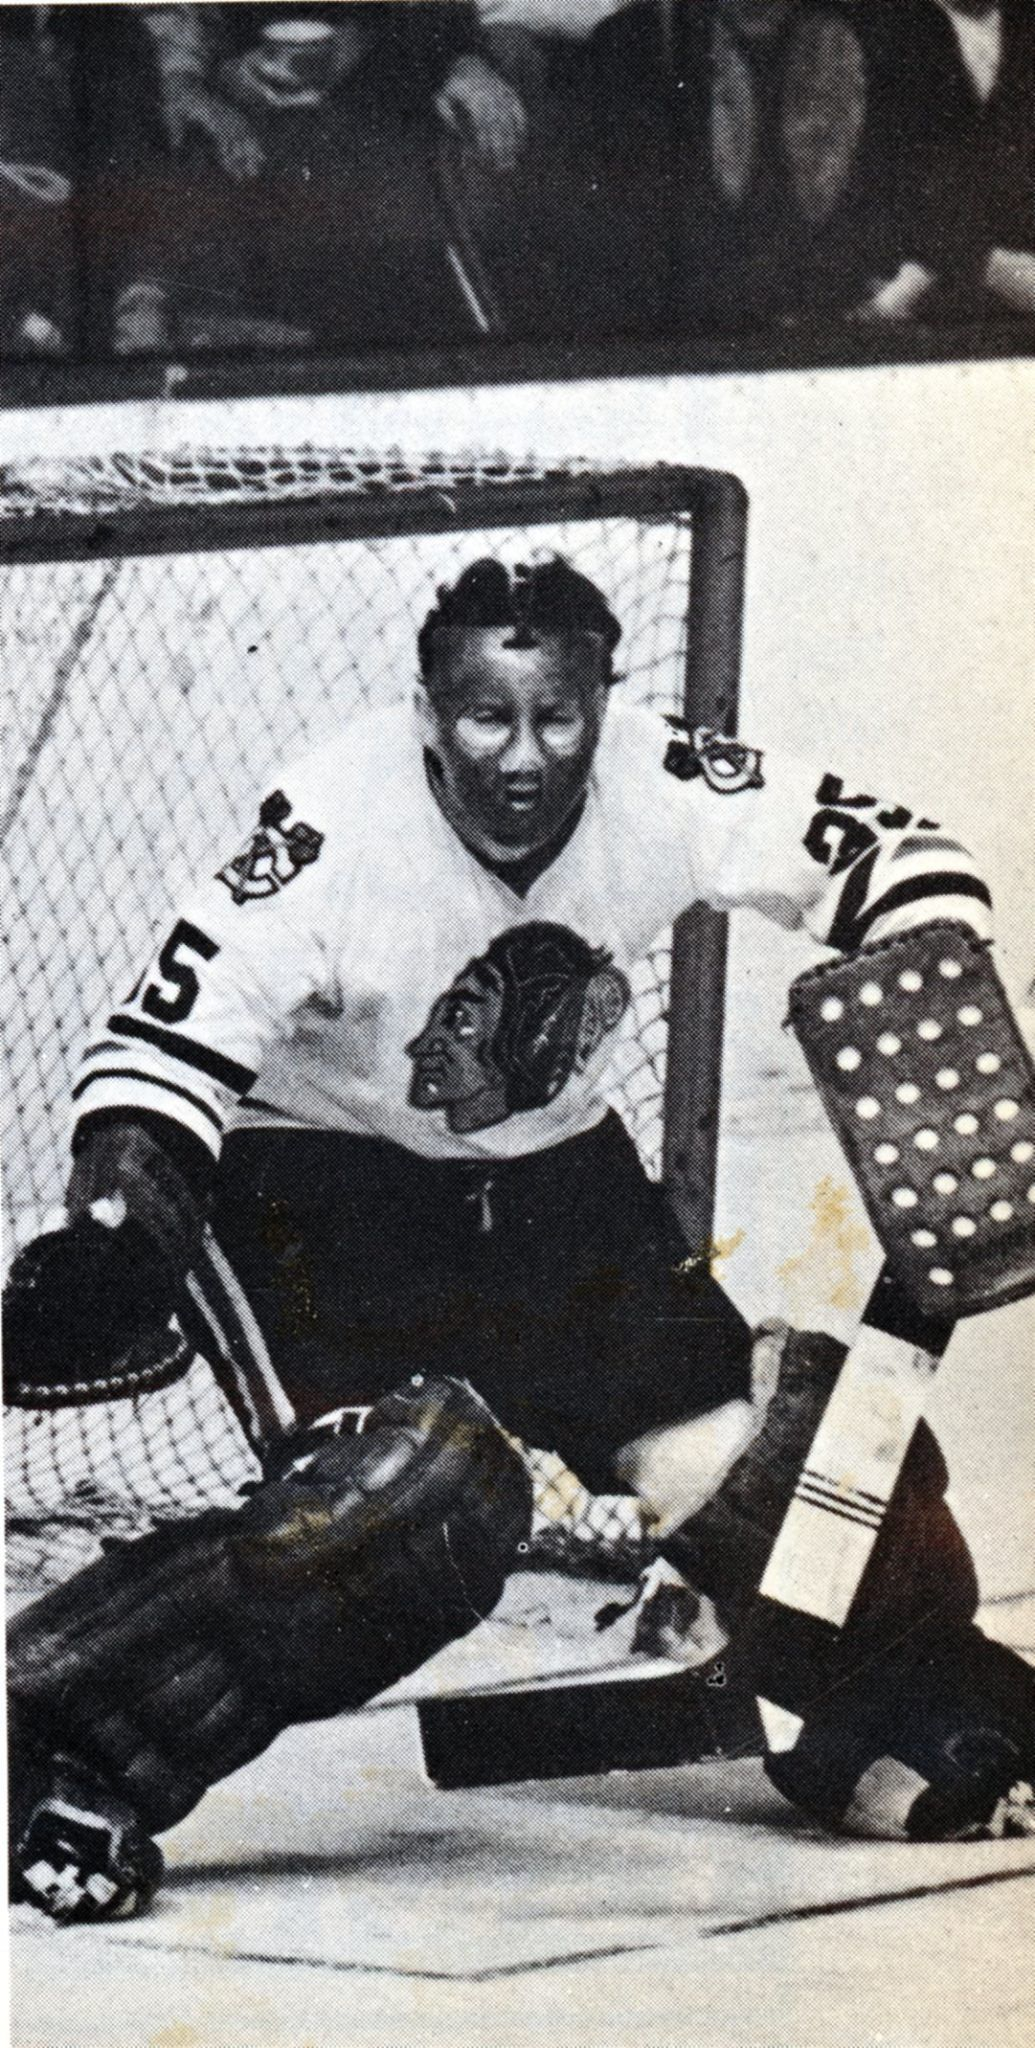 eca0e4efb84 Tony Esposito sporting his early mask in the late 1960 s.